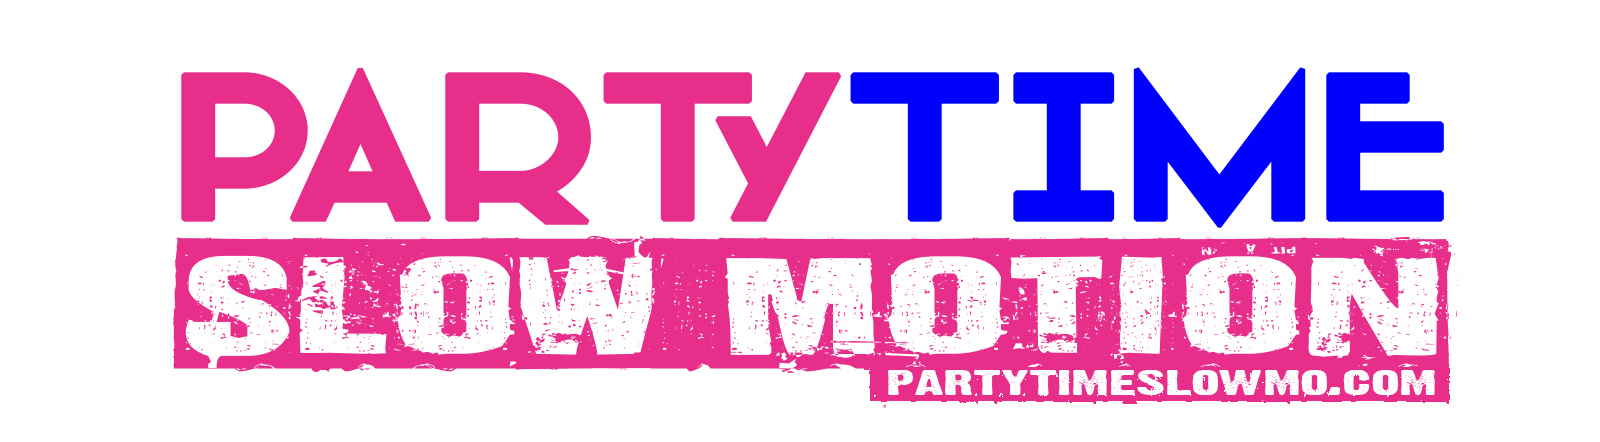 Party Time Slow Motion Logo